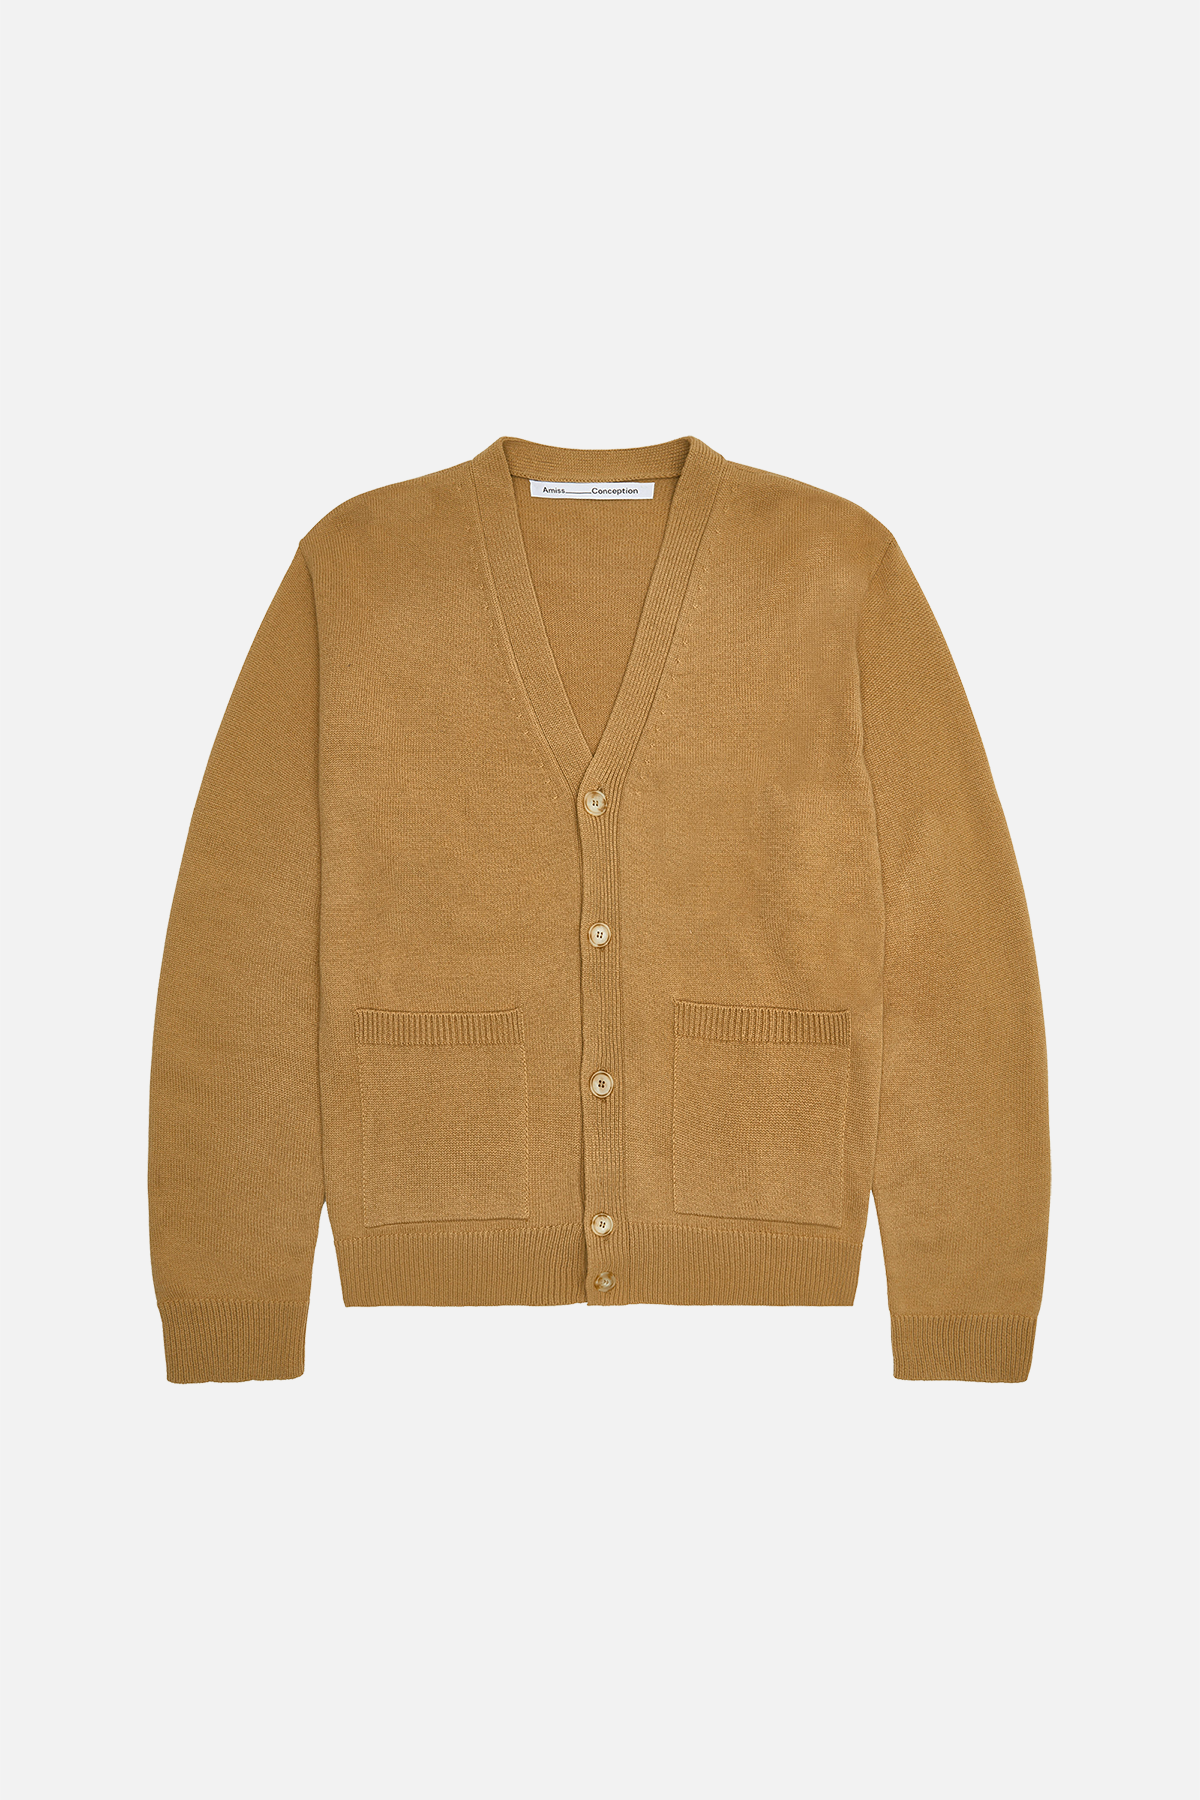 The Cardigan in Tortilla